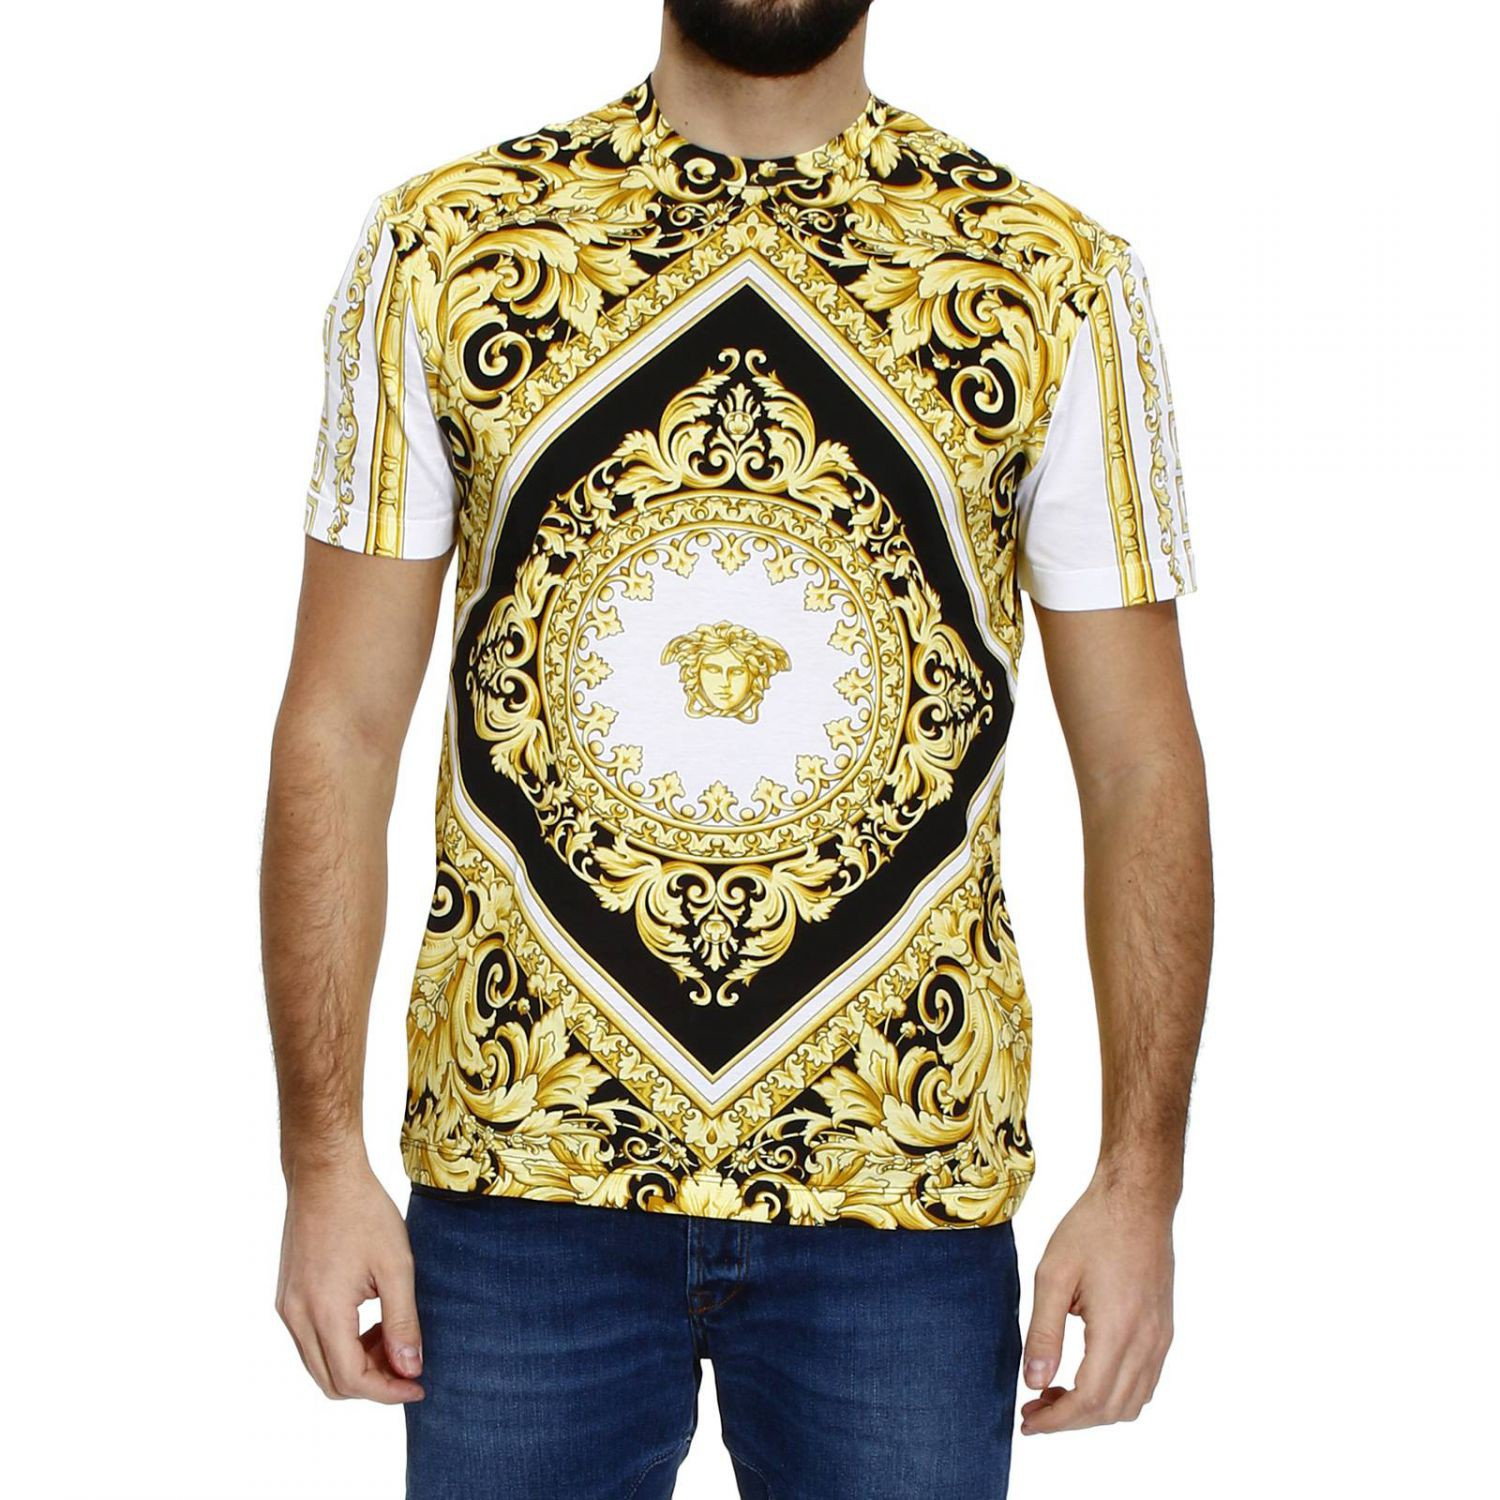 versace t shirt mezza manica girocollo stampa barocco rombo in yellow for men bianco lyst. Black Bedroom Furniture Sets. Home Design Ideas